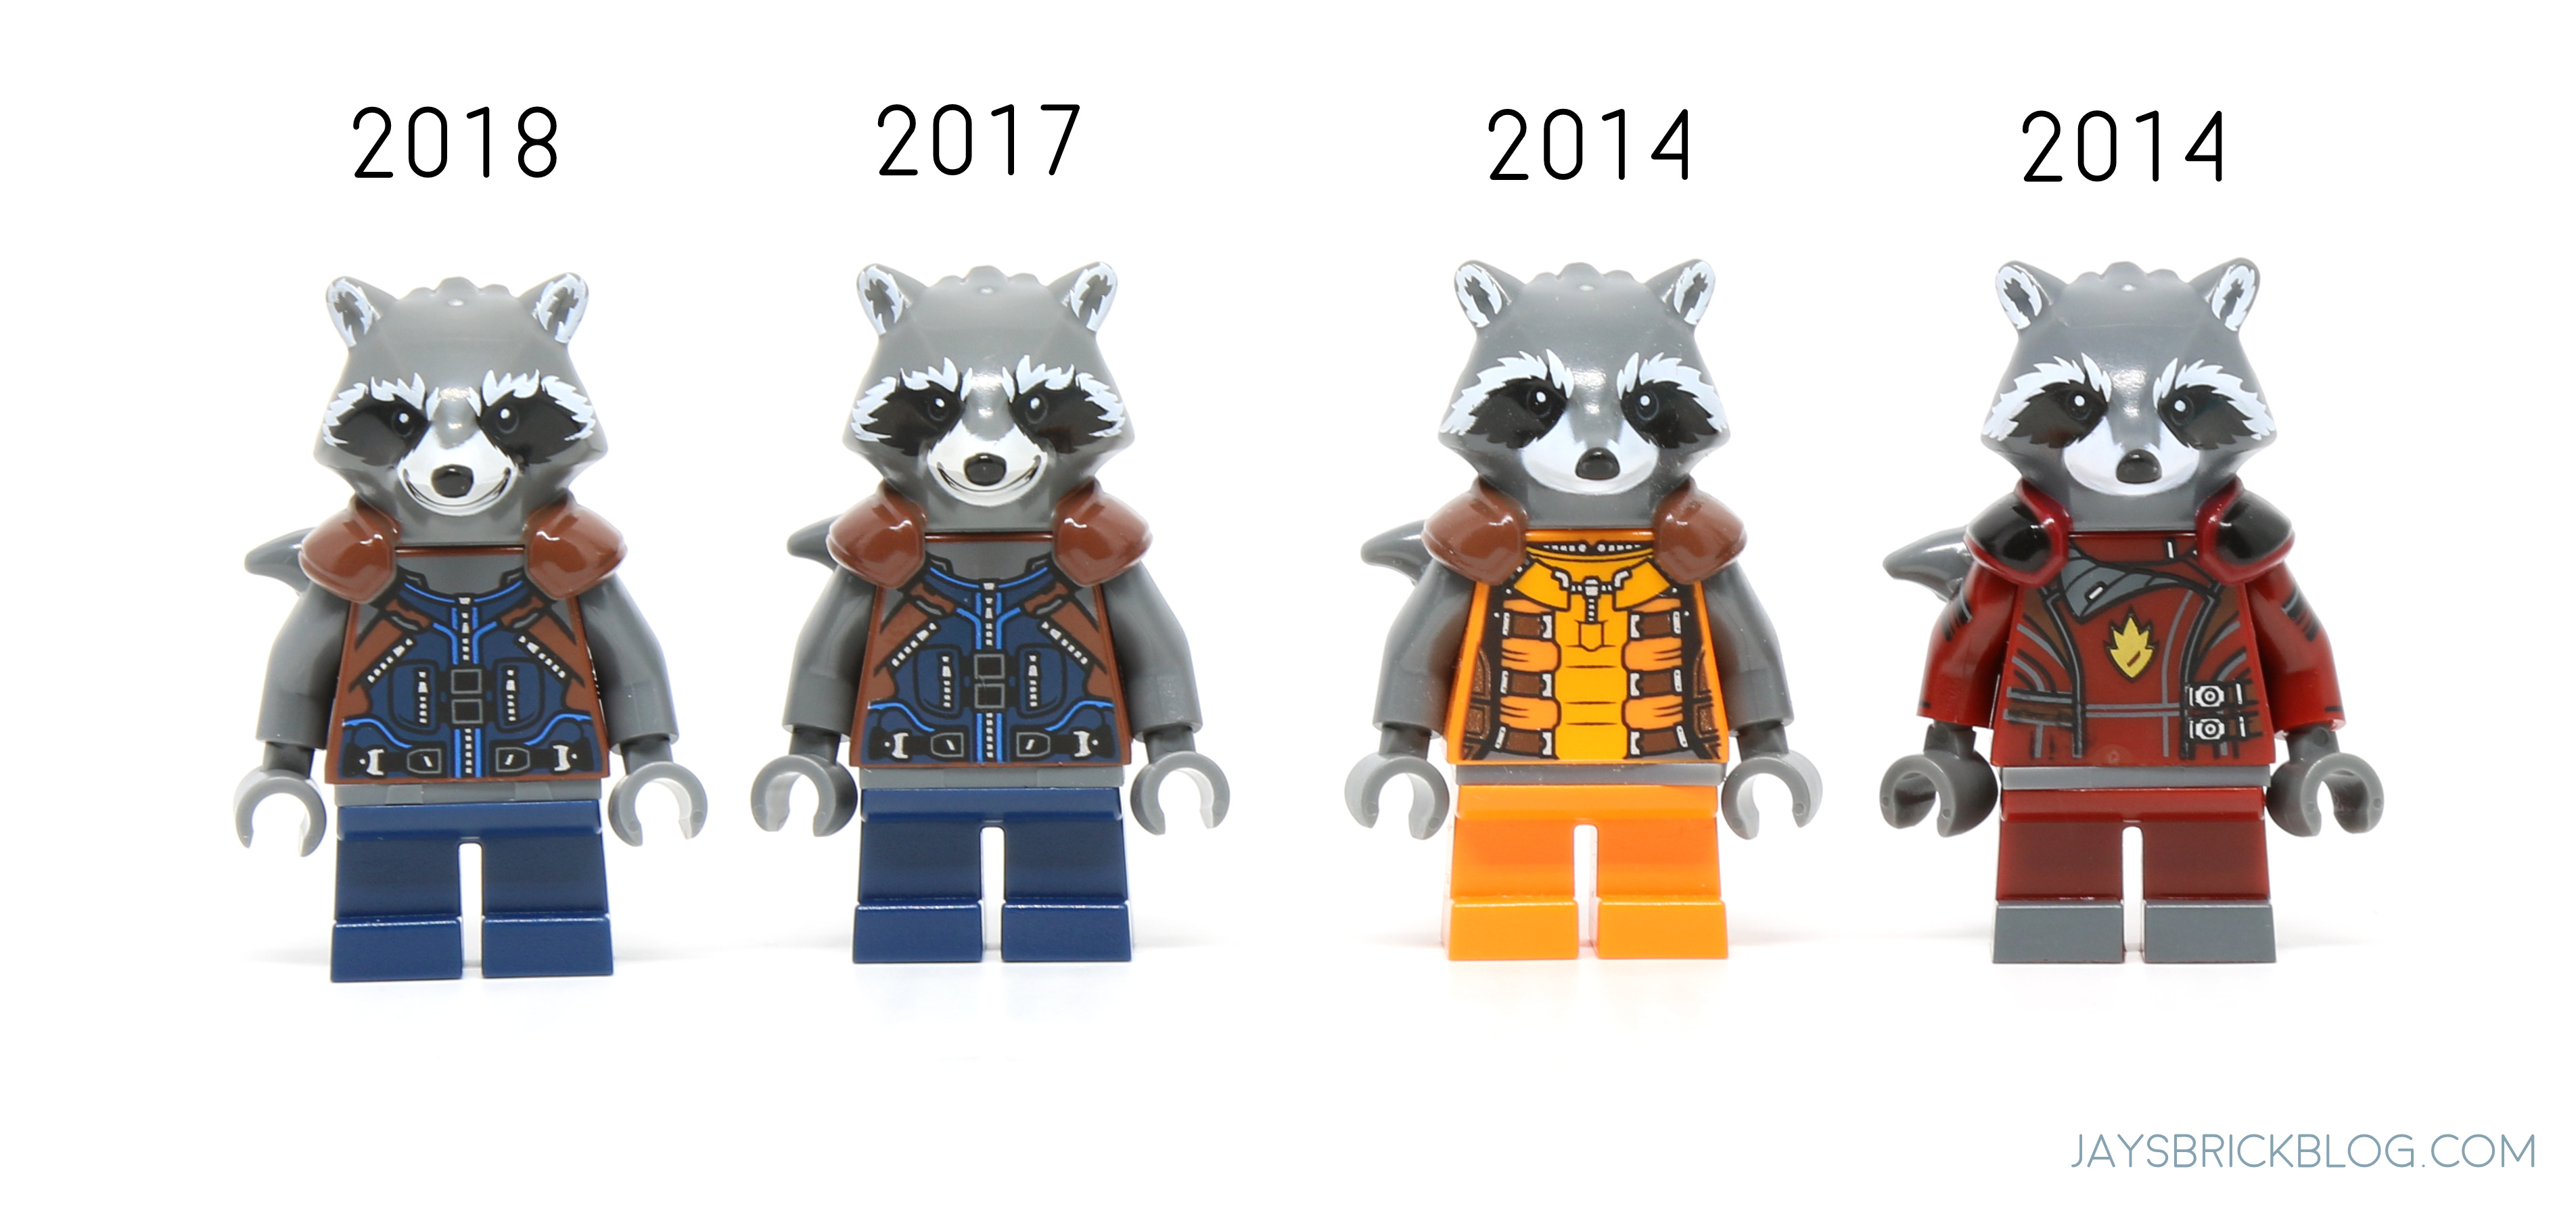 http://jaysbrickblog.com/wp-content/uploads/2018/03/LEGO-Rocket-Raccoon-Comparison.jpg